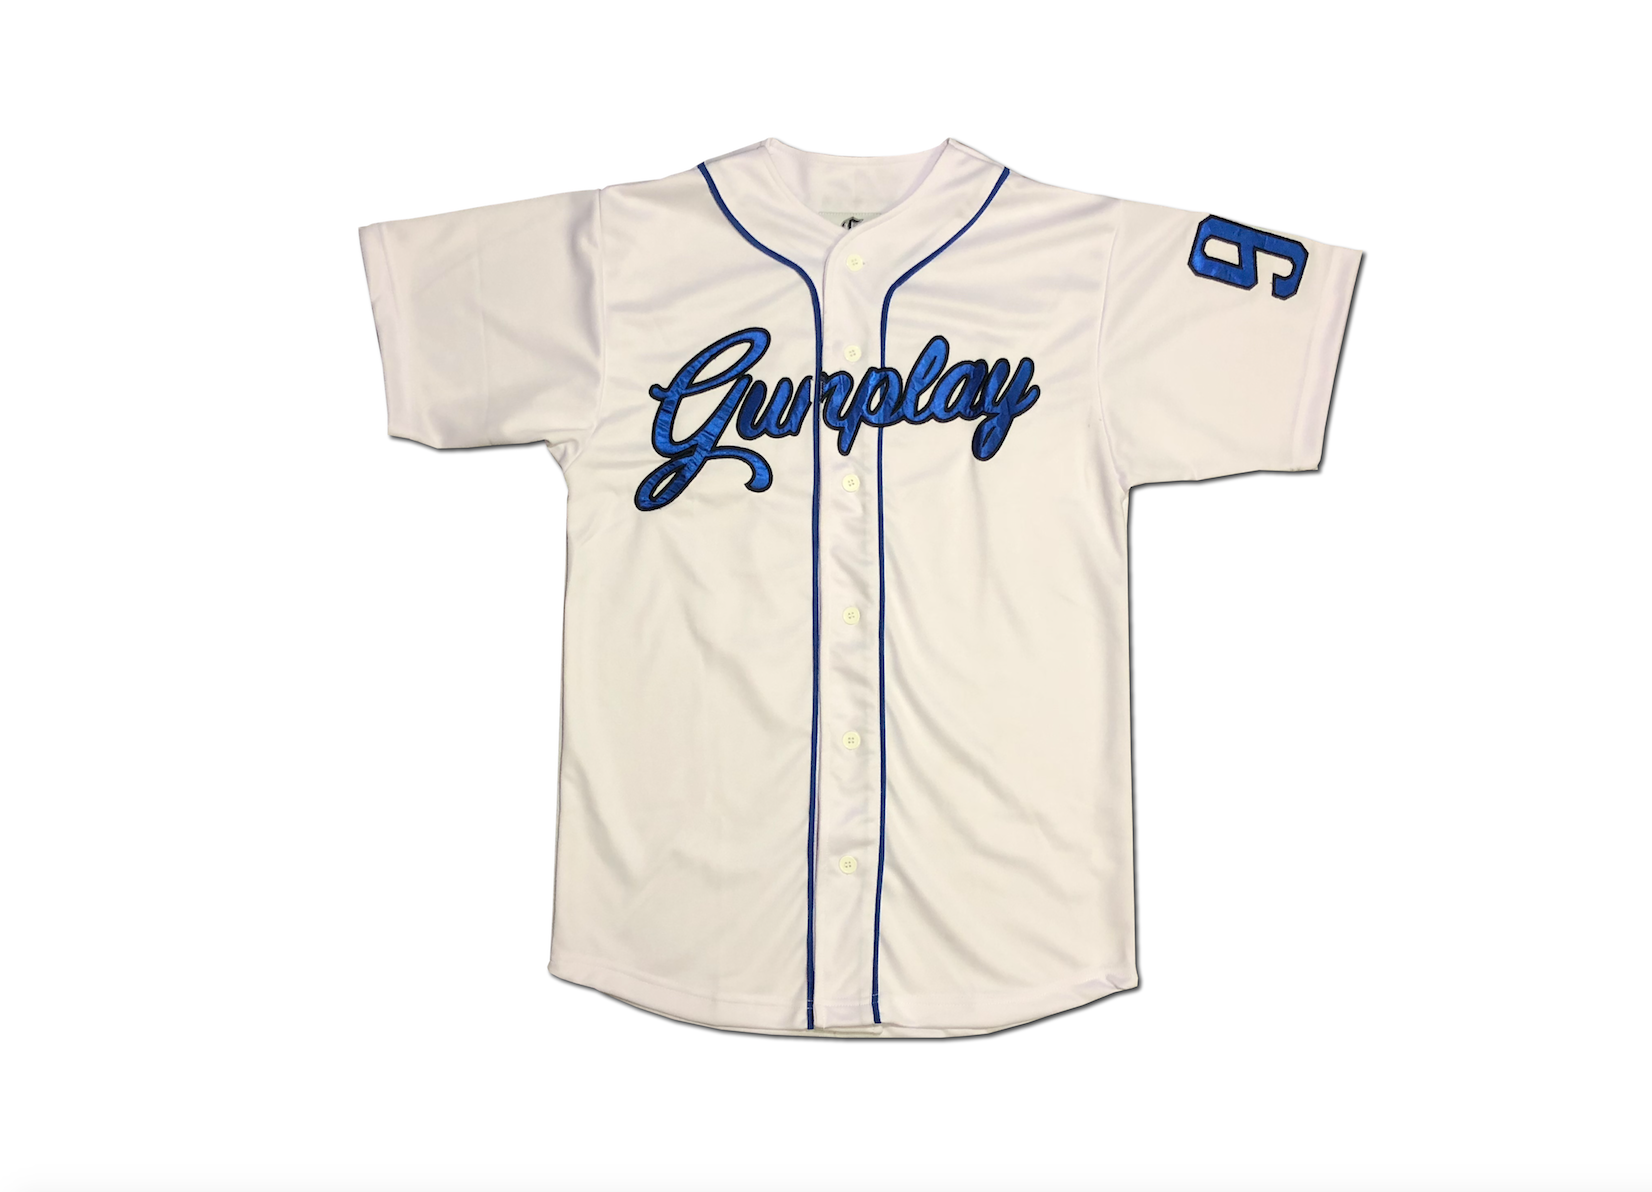 Royal Baseball Jersey - White